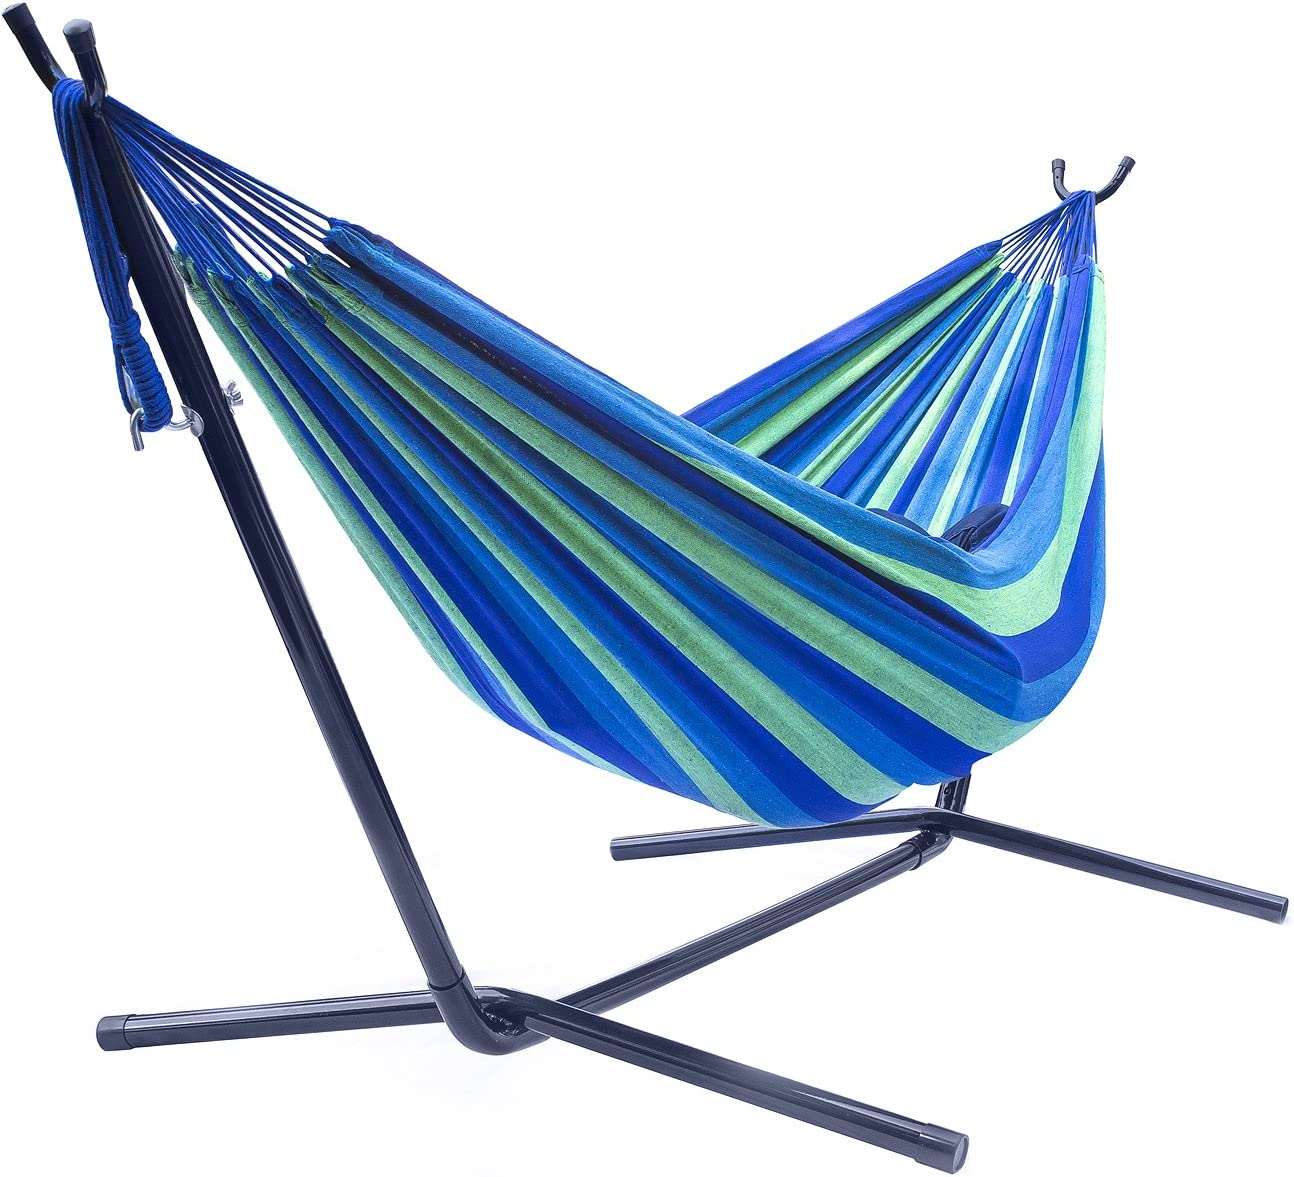 Sorbus Double Hammock with Steel Stand Two Person Adjustable Hammock Bed - Storage Carrying Case Included Blue Green